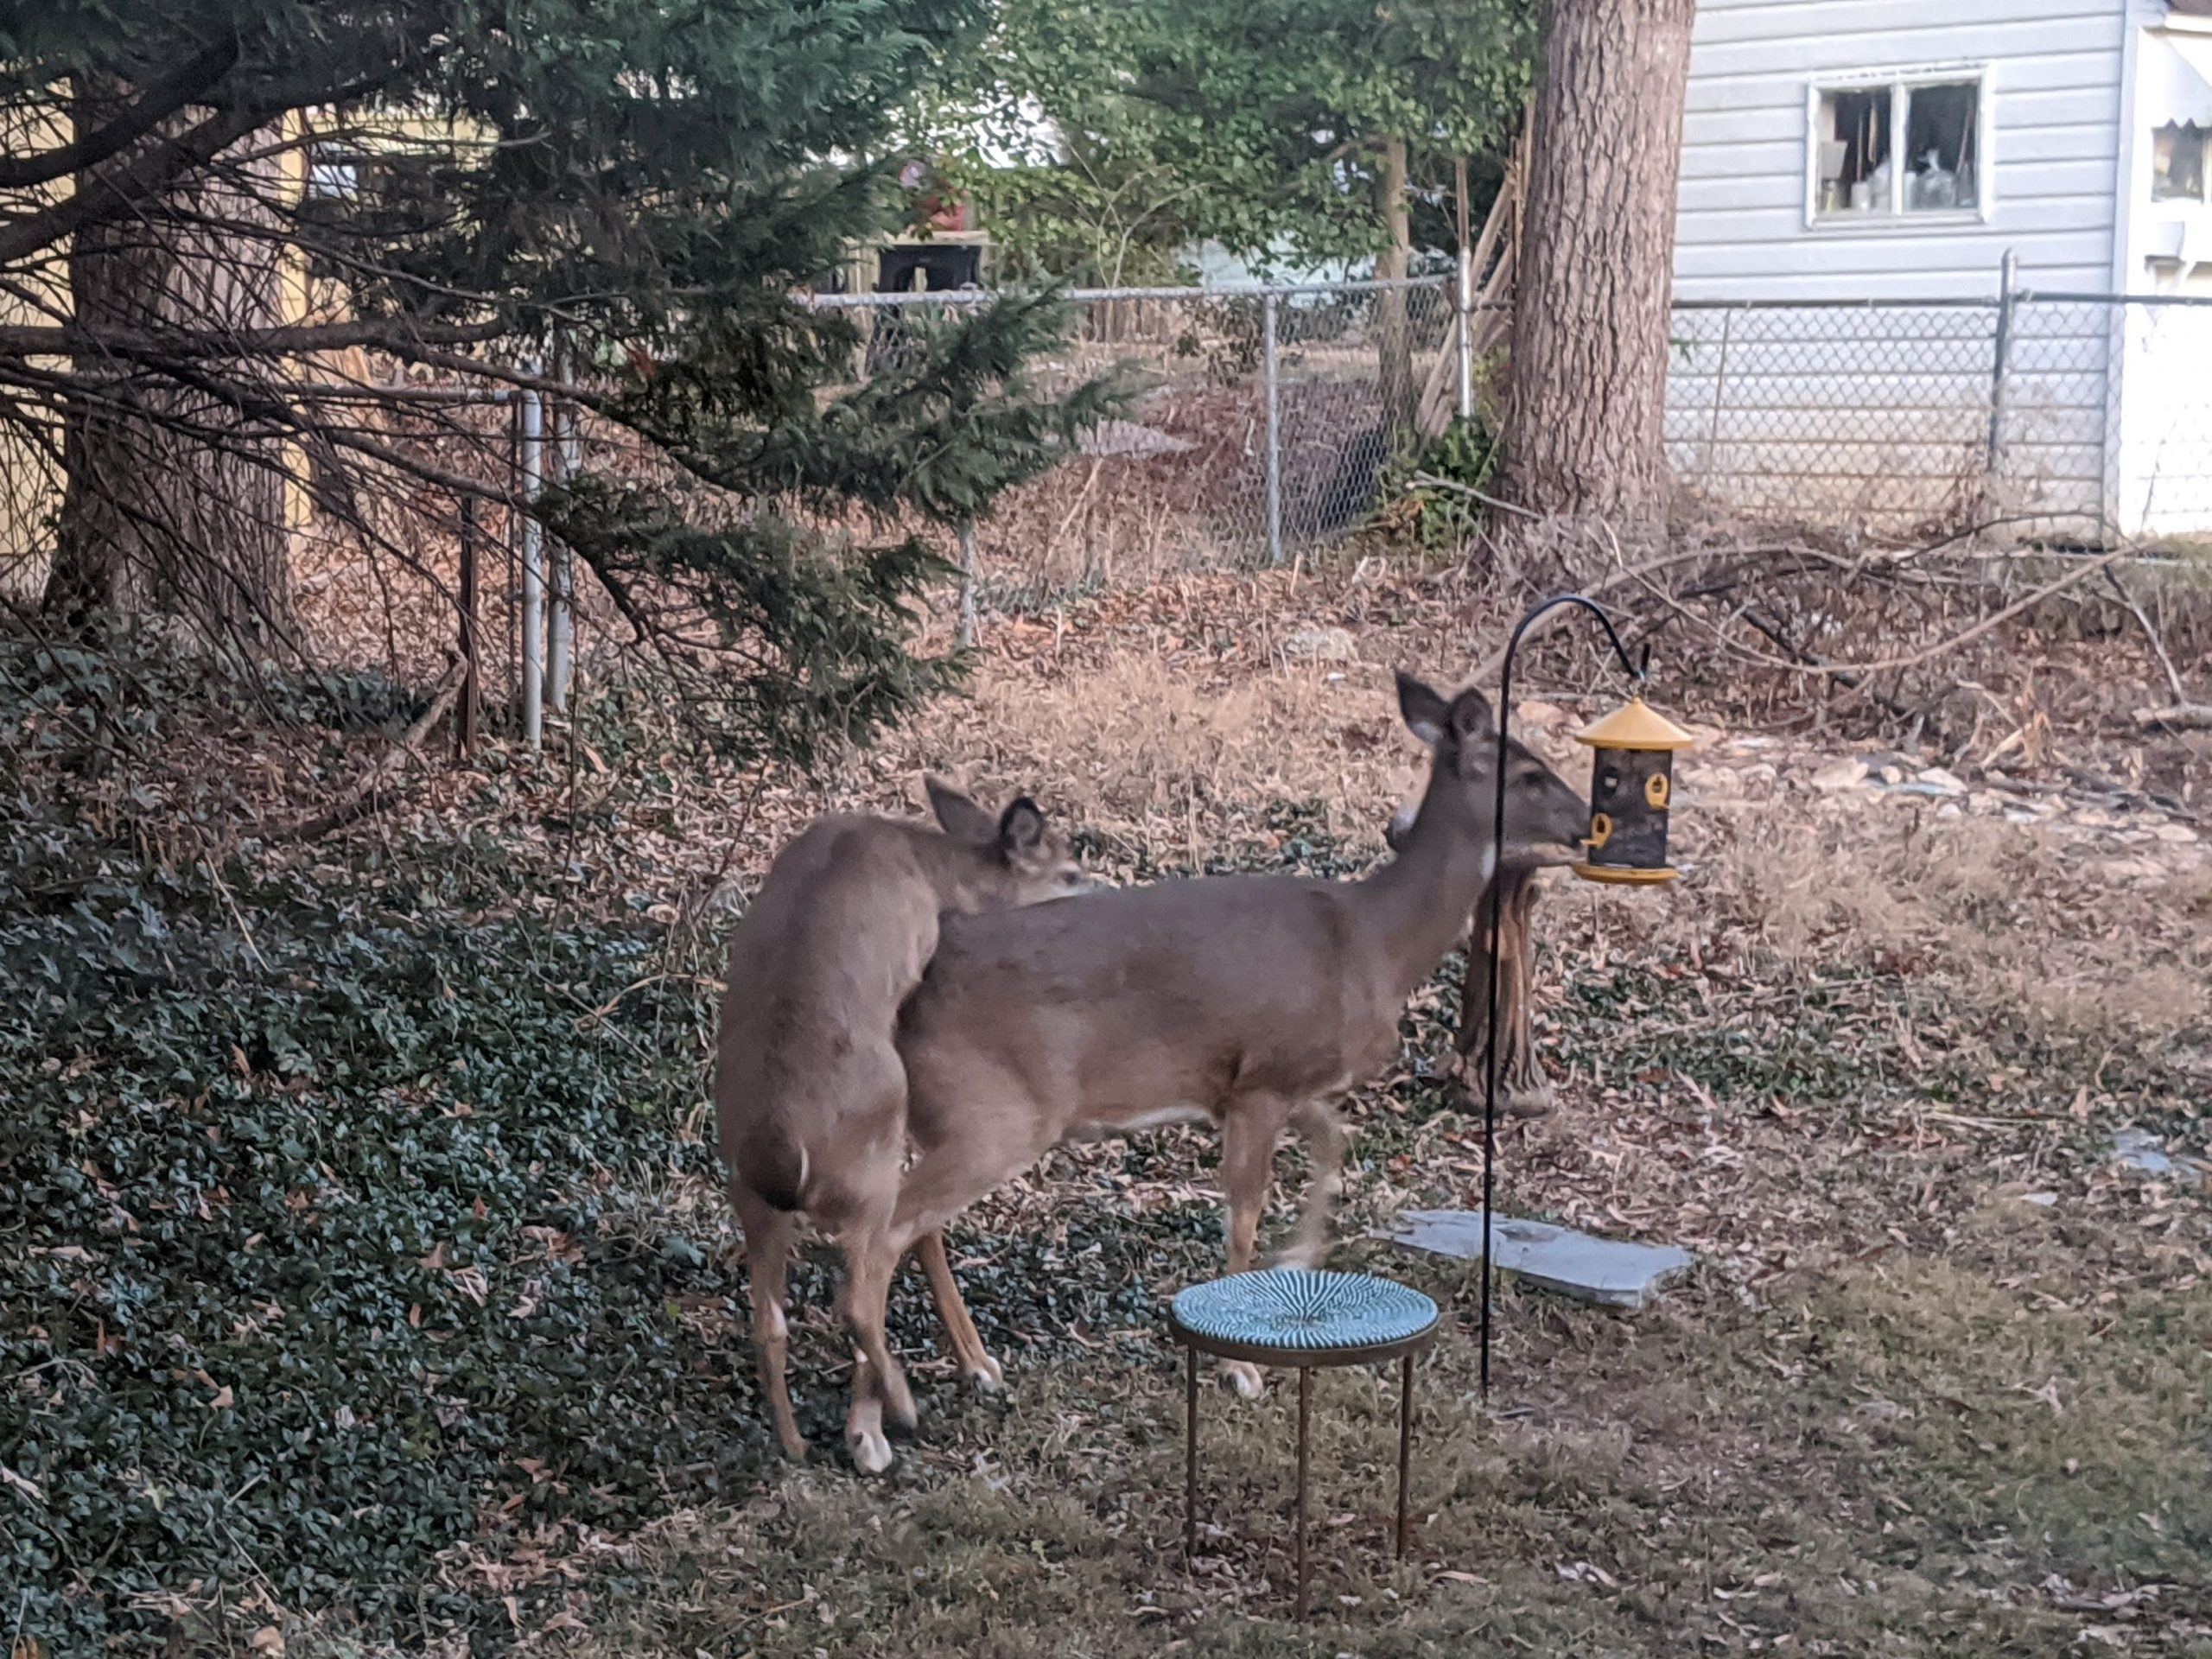 Deer eating out of bird feeder